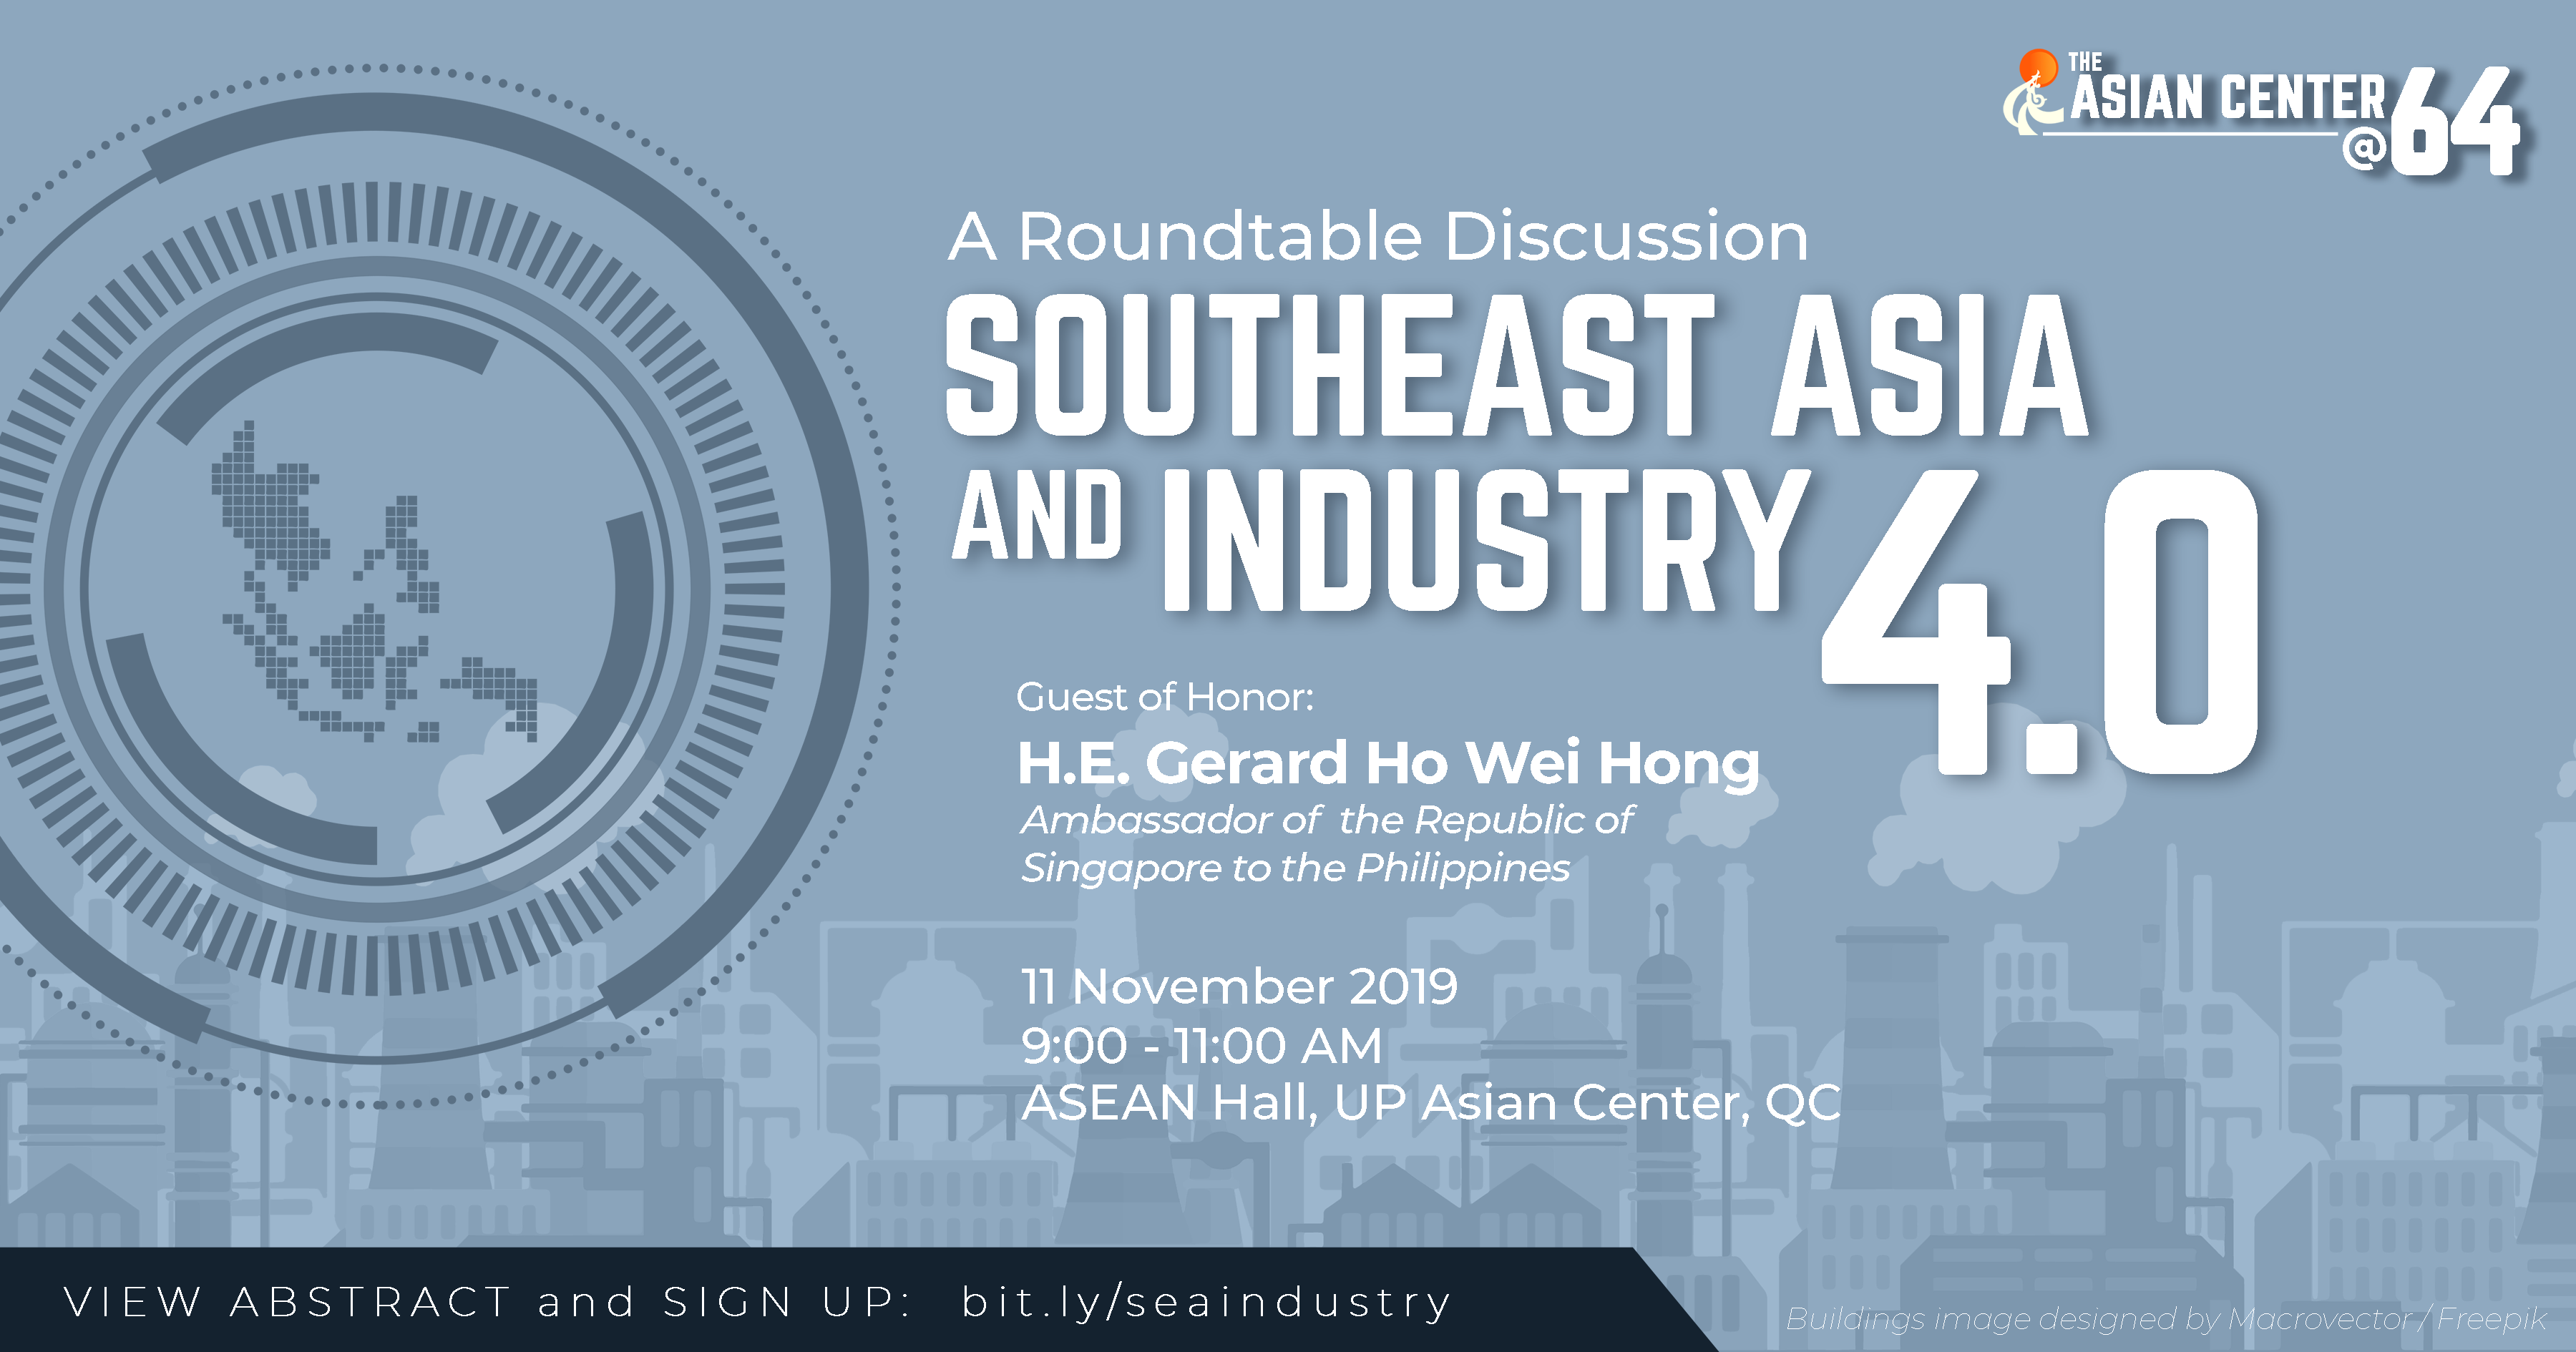 Southeast Asia and Industry 4.0: A Roundtable